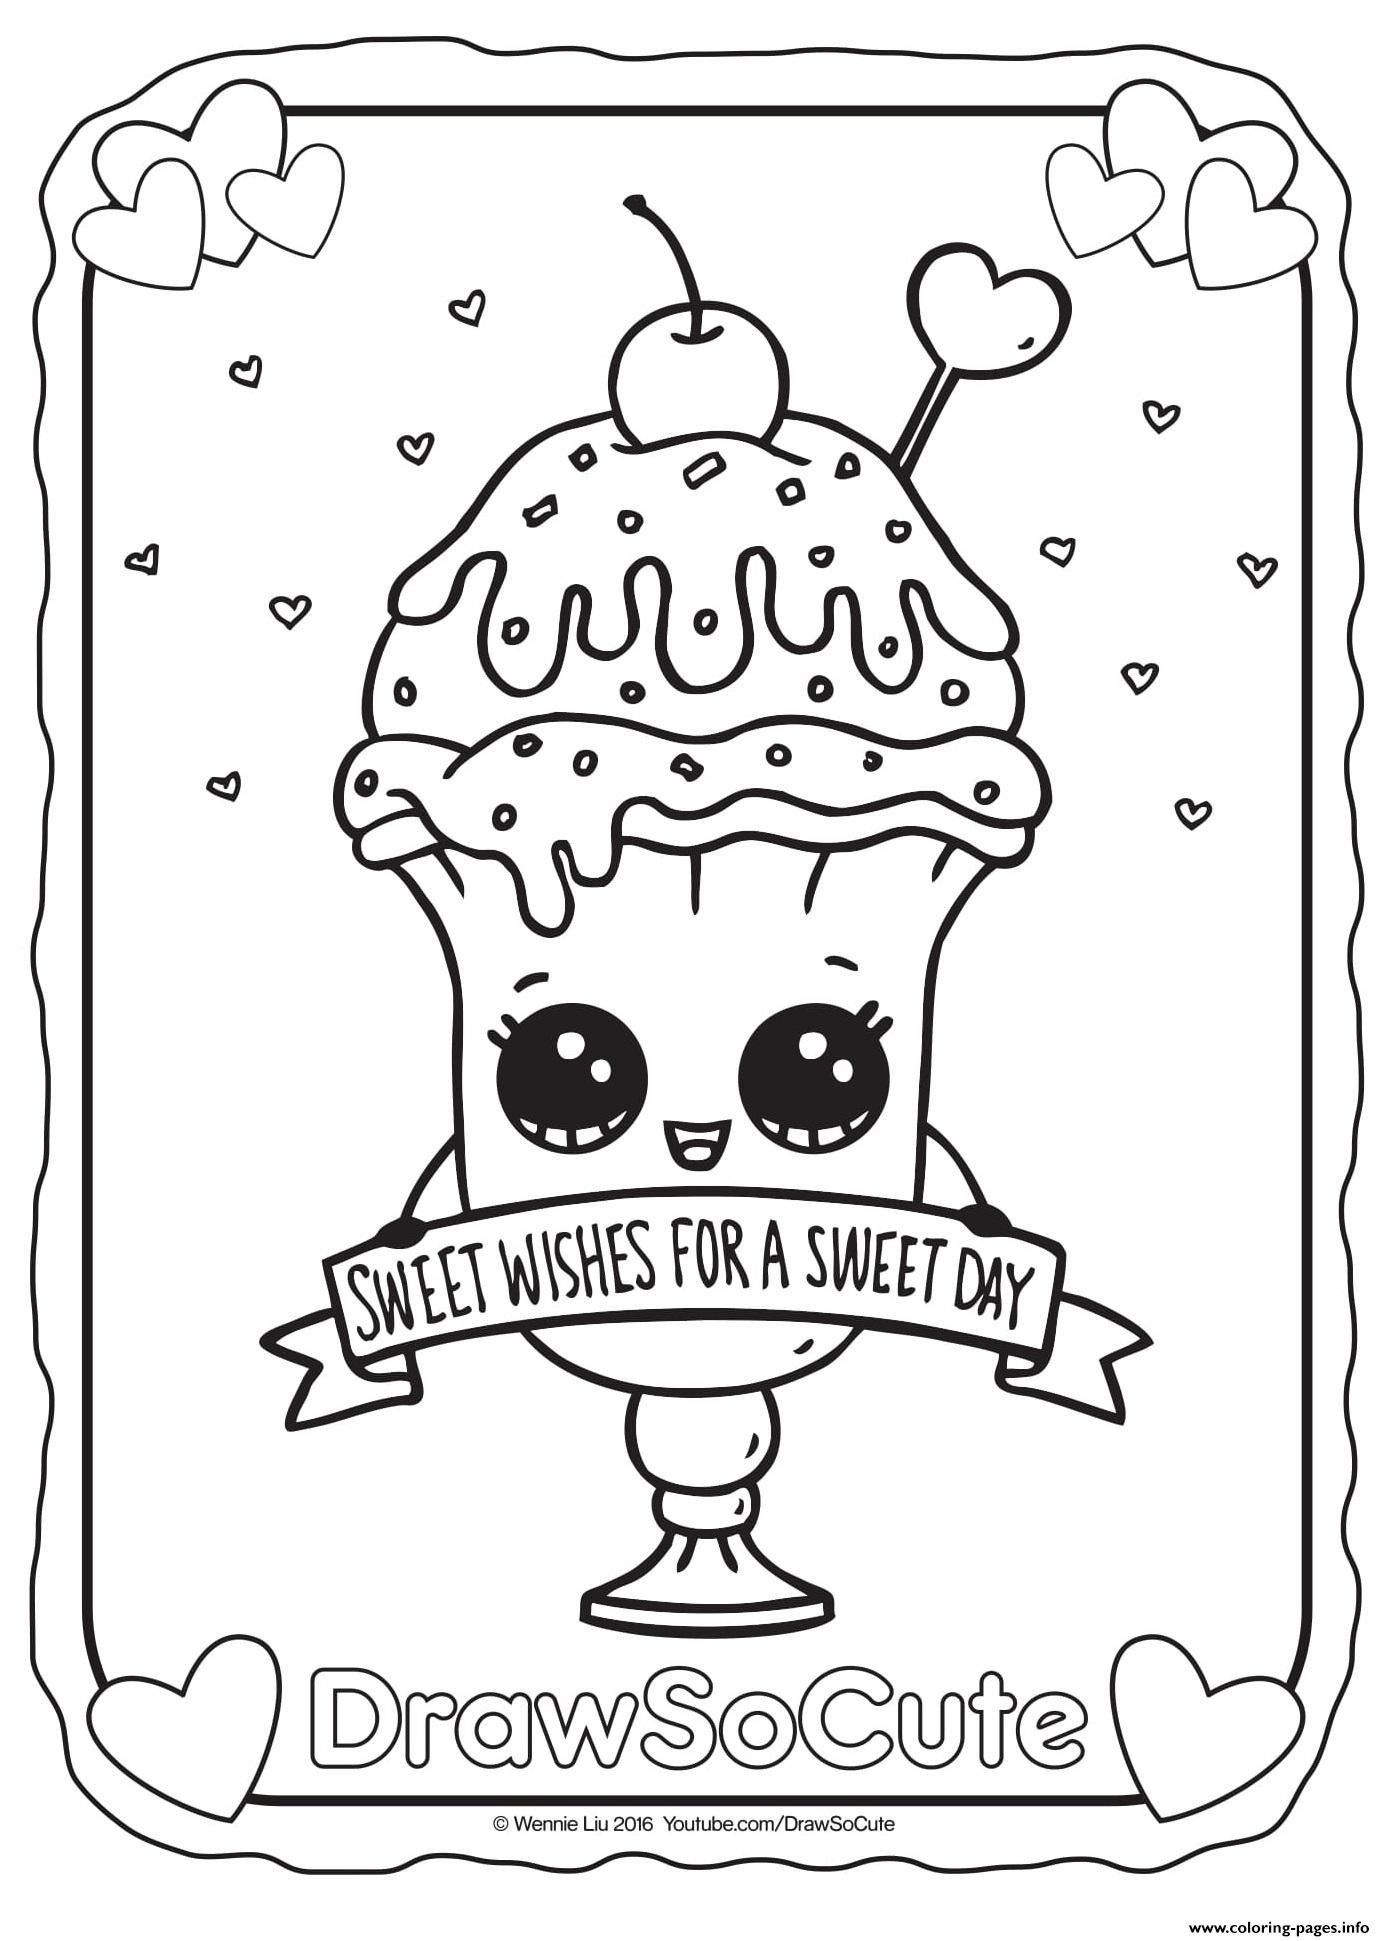 Cute Coloring Page Printable Draw So Cute Coloring Pages 4 D Sundae Coloring Page Unicorn Coloring Pages Monkey Coloring Pages Cute Coloring Pages